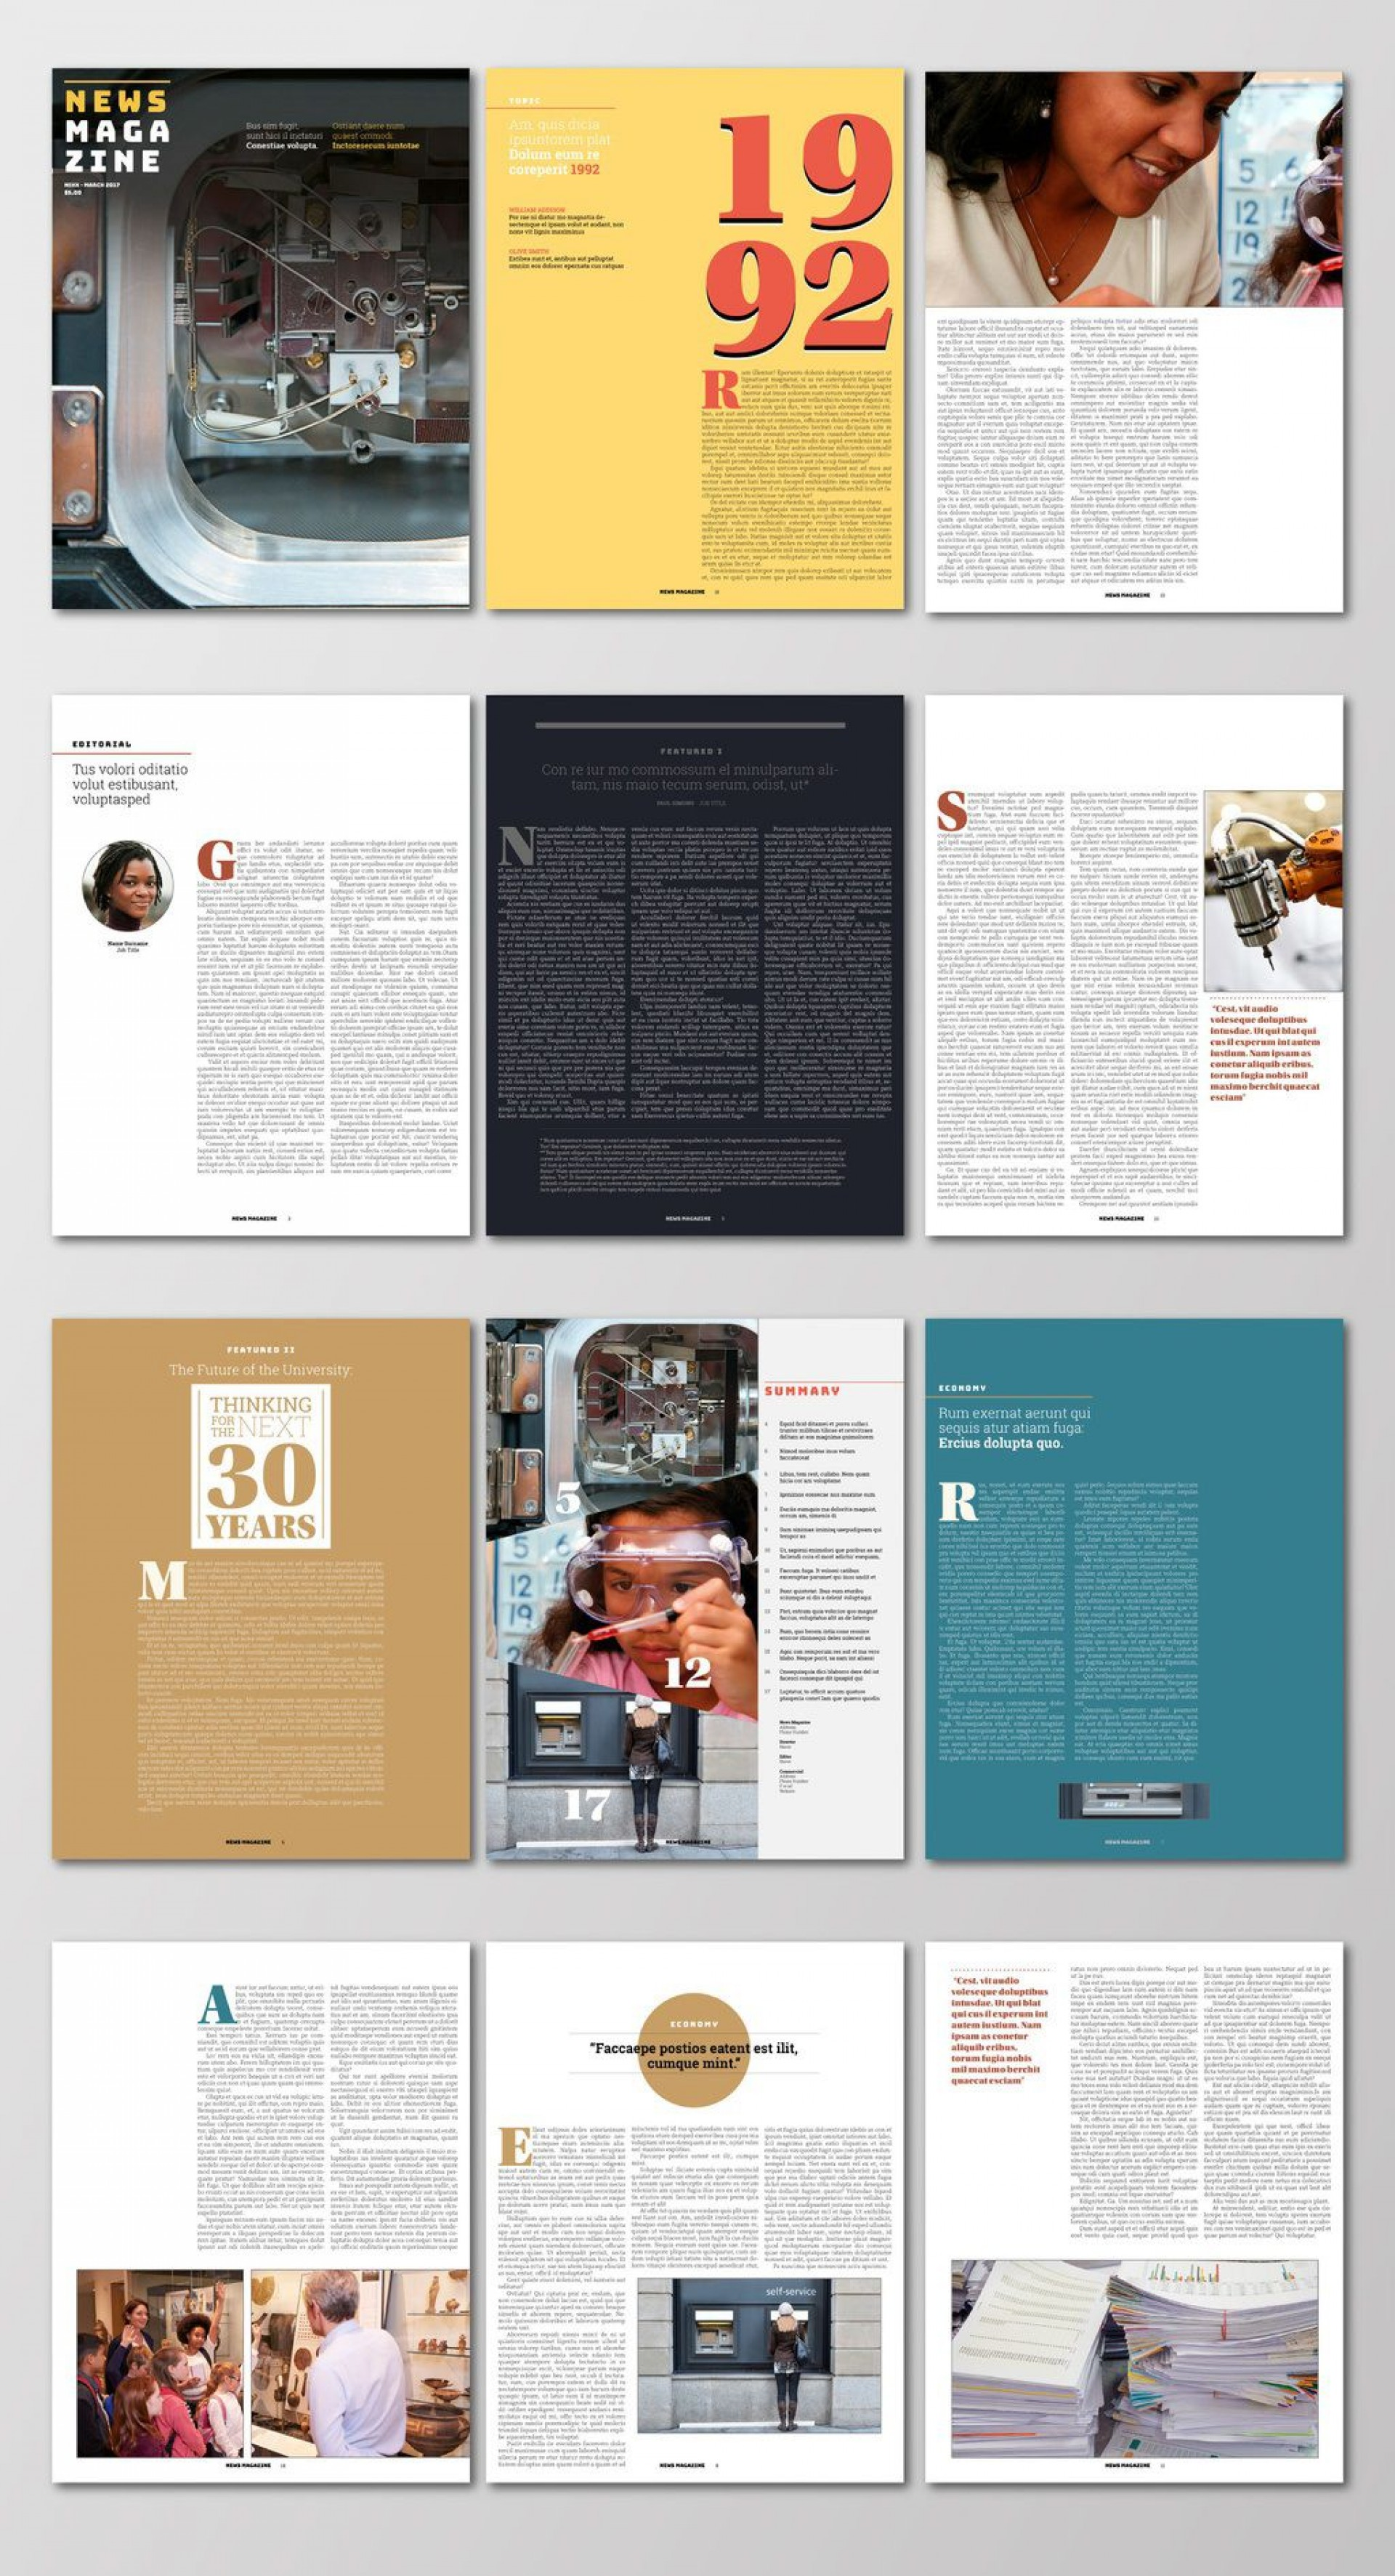 004 Excellent Indesign Magazine Template Free Concept  Cover Download Indd Cs51920